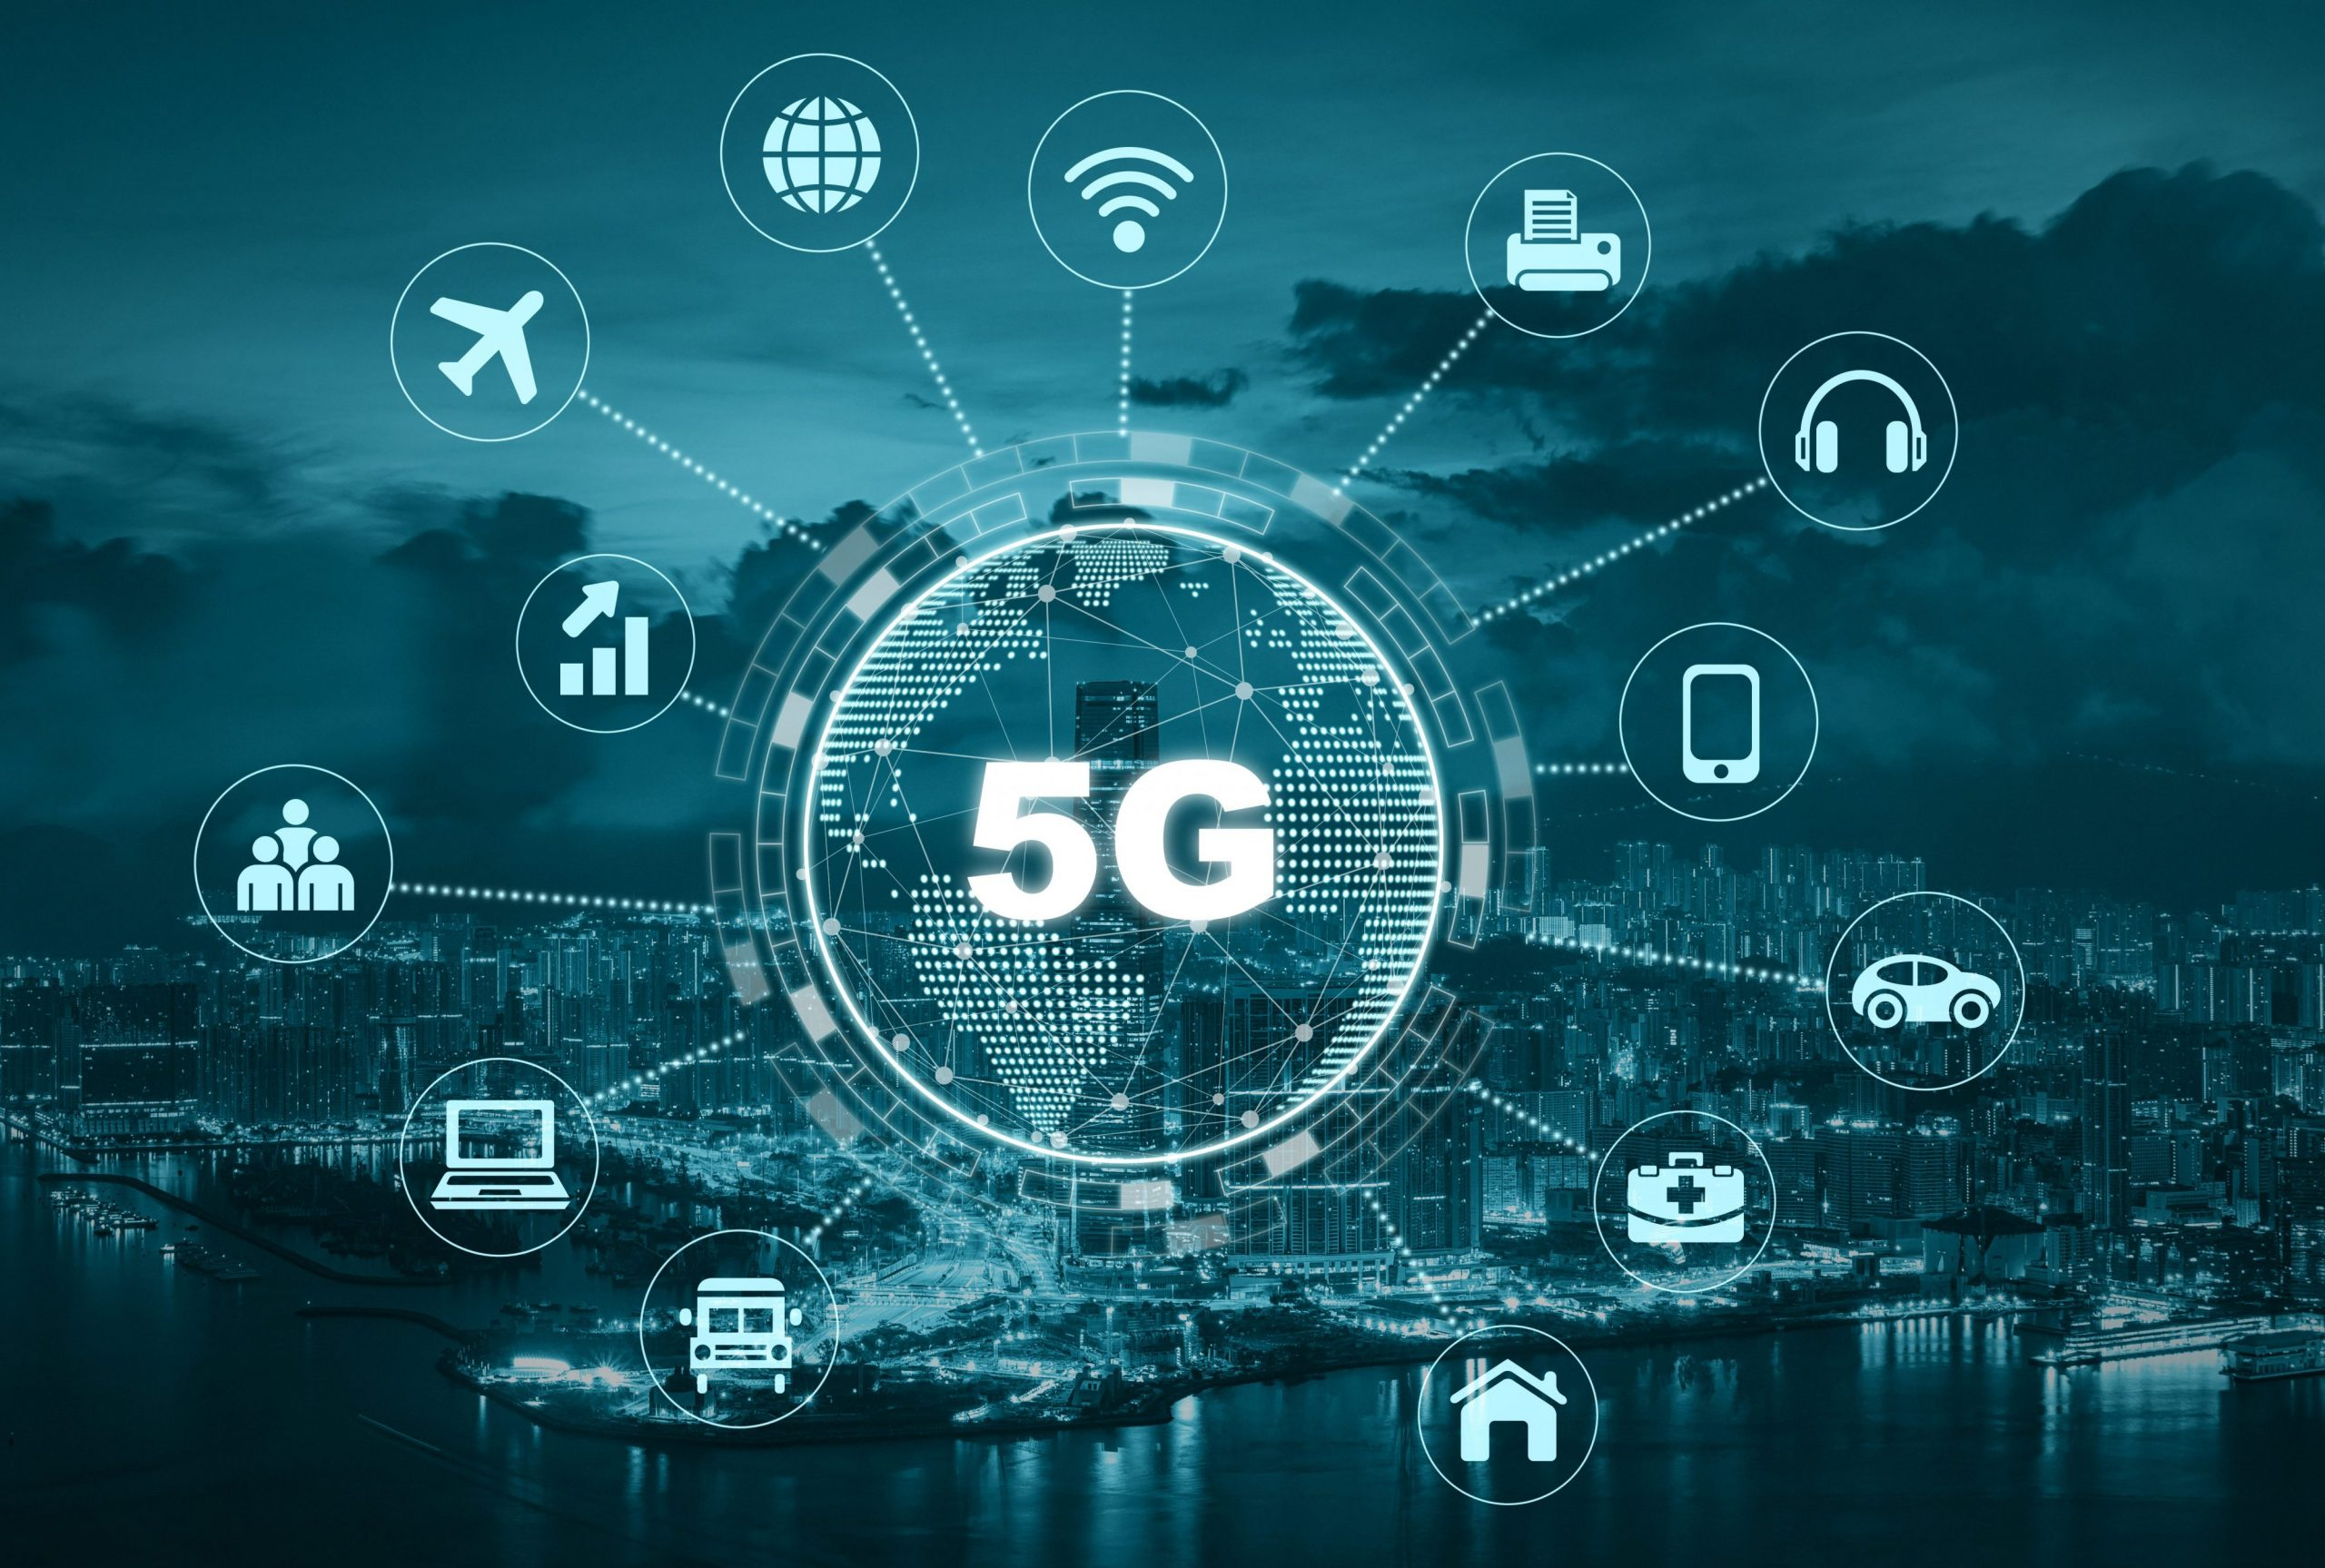 5G: what is it? What is its effect on the human body? Is it dangerous?